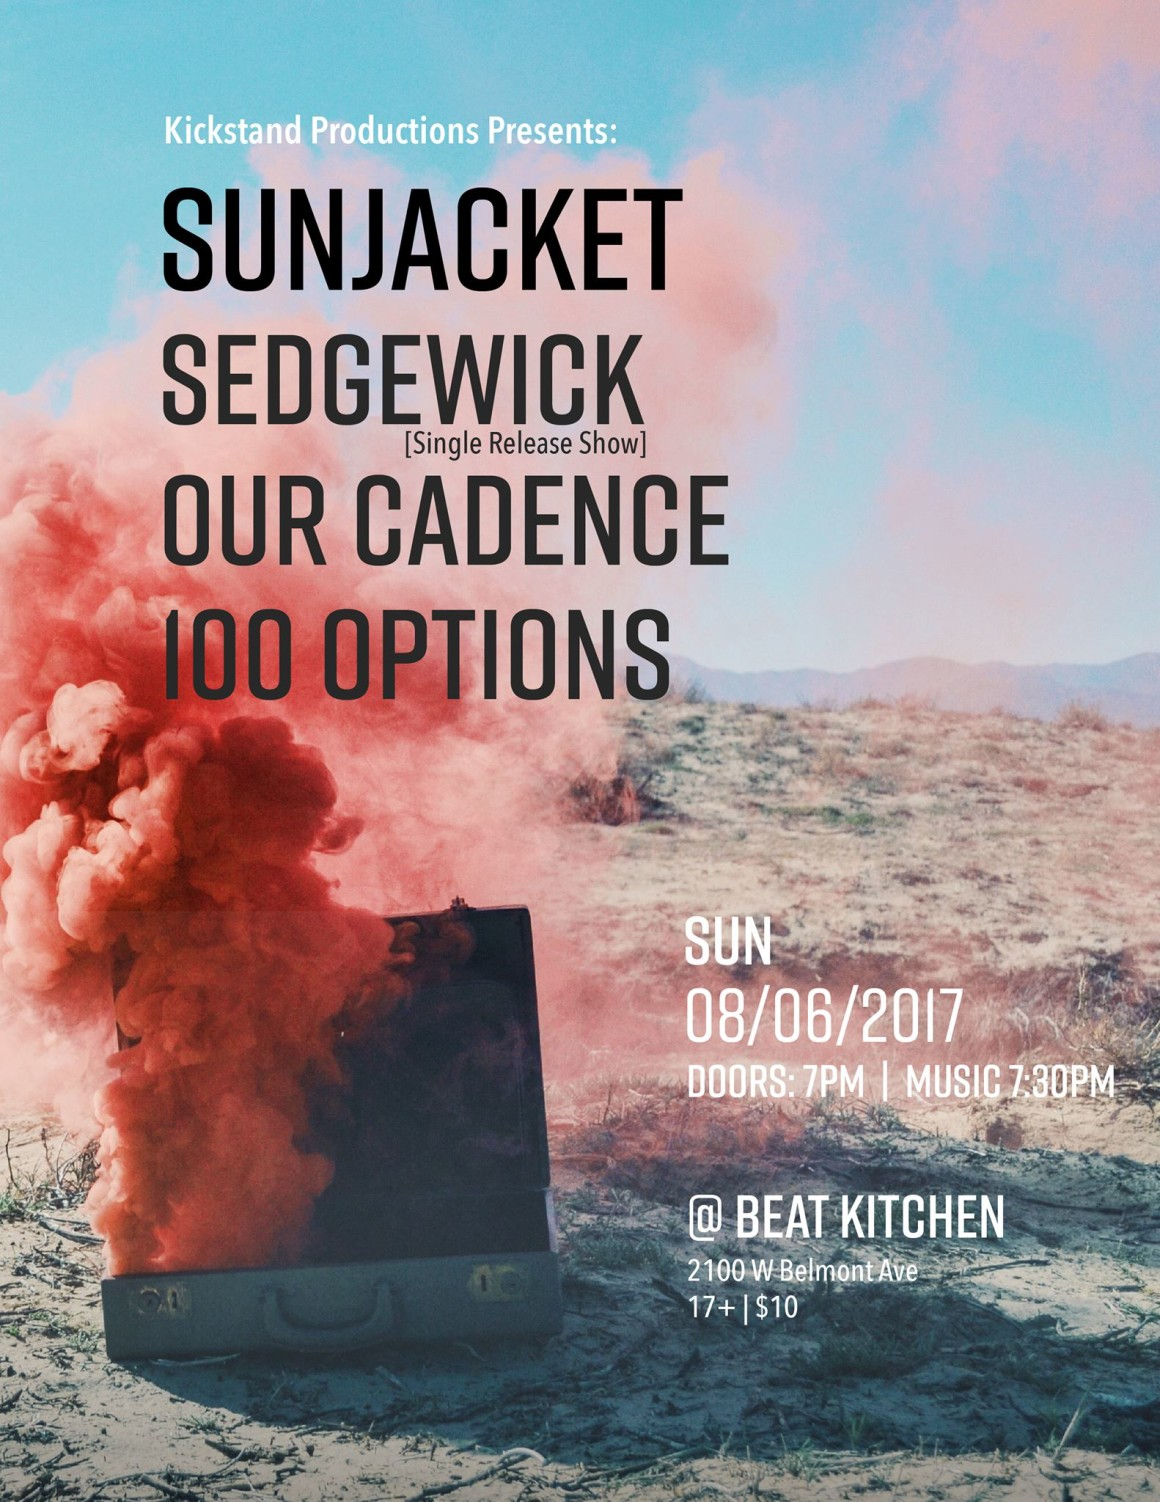 sunjacket